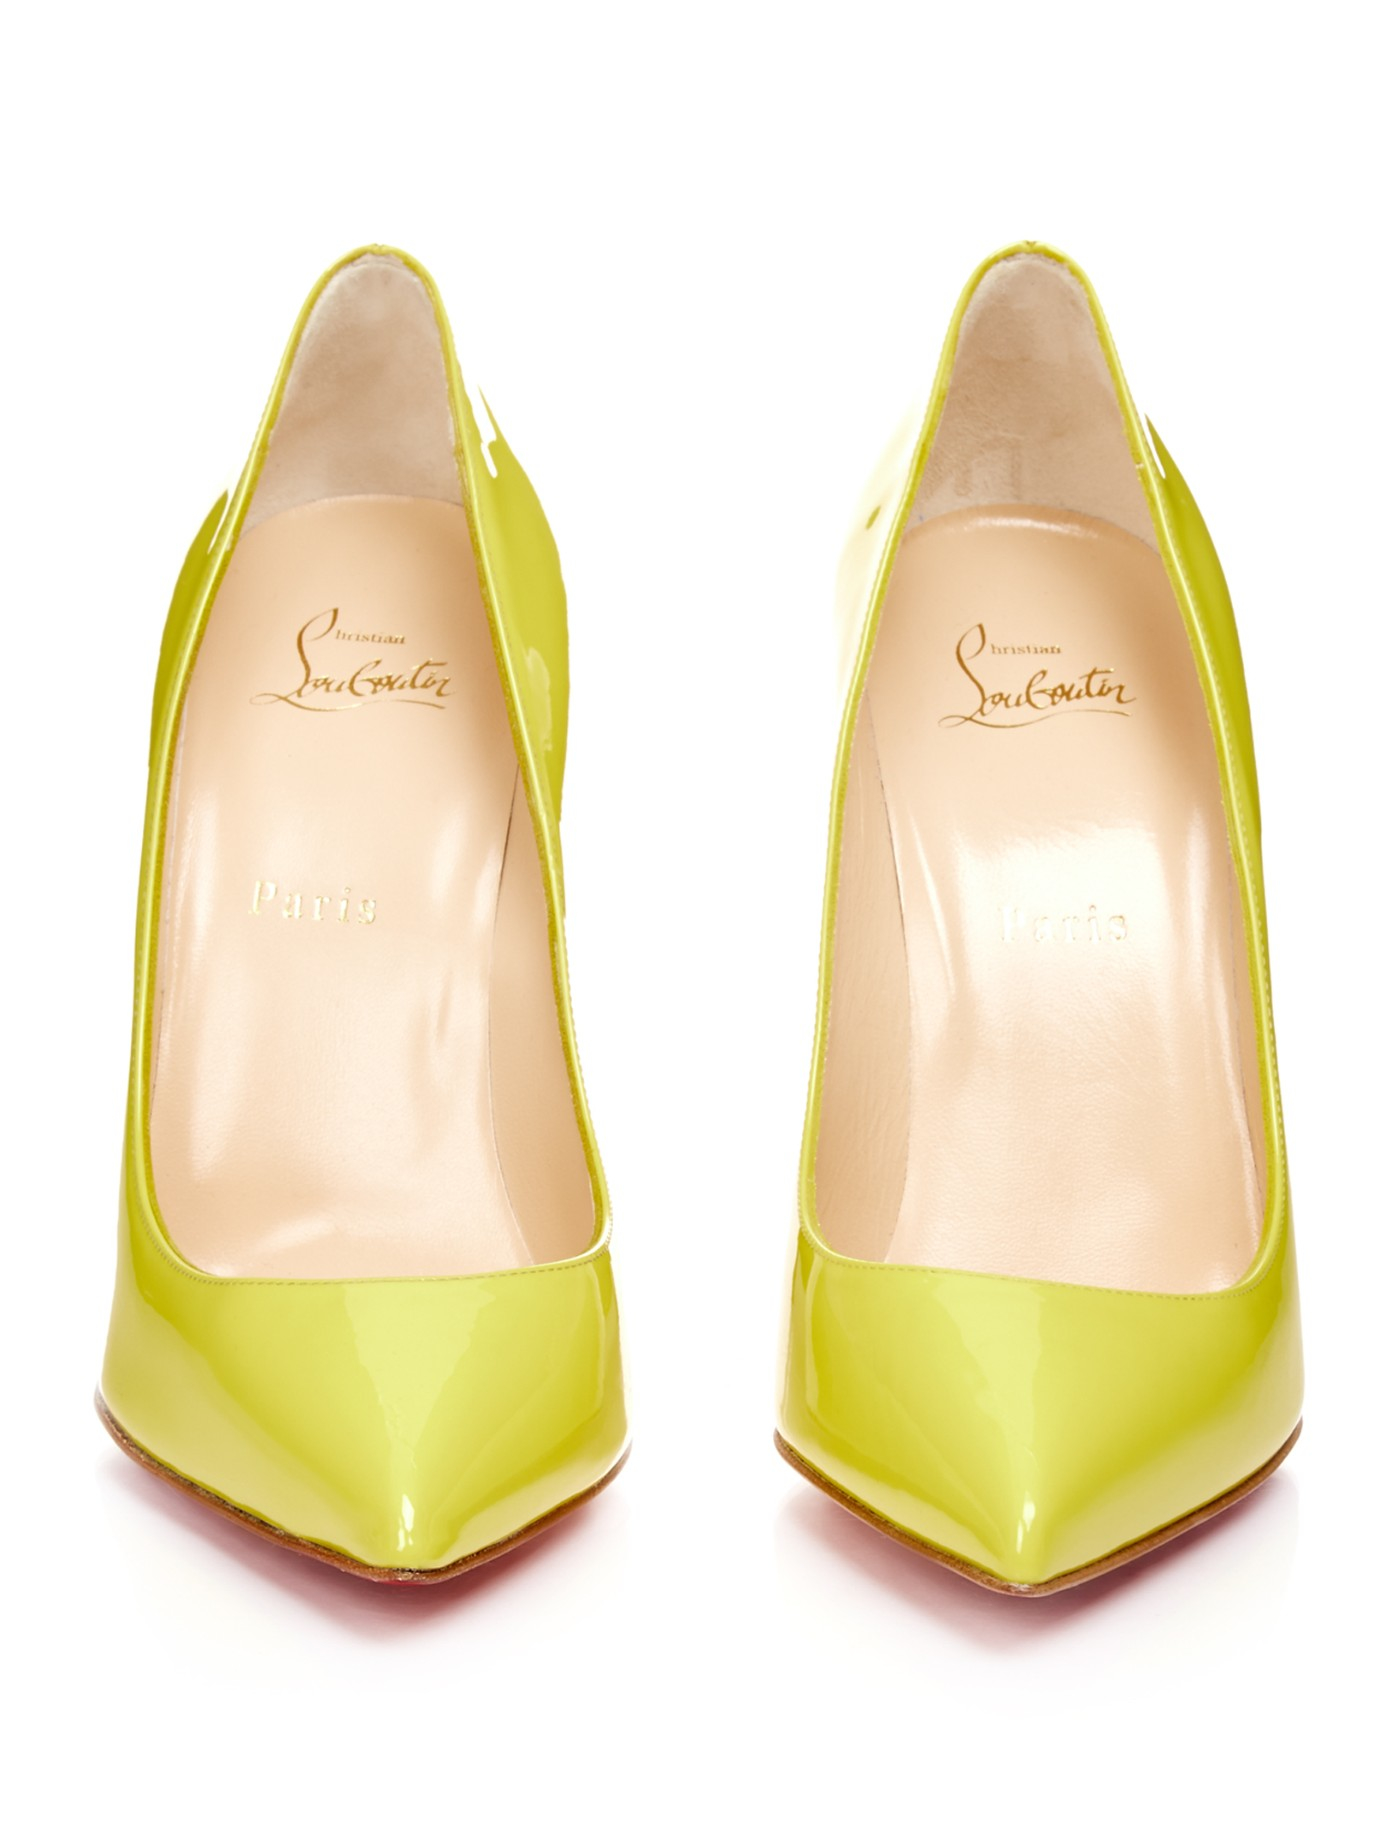 christian louboutin knockoff shoes - Christian louboutin Pigalle Follies 100mm Patent-leather Pumps in ...